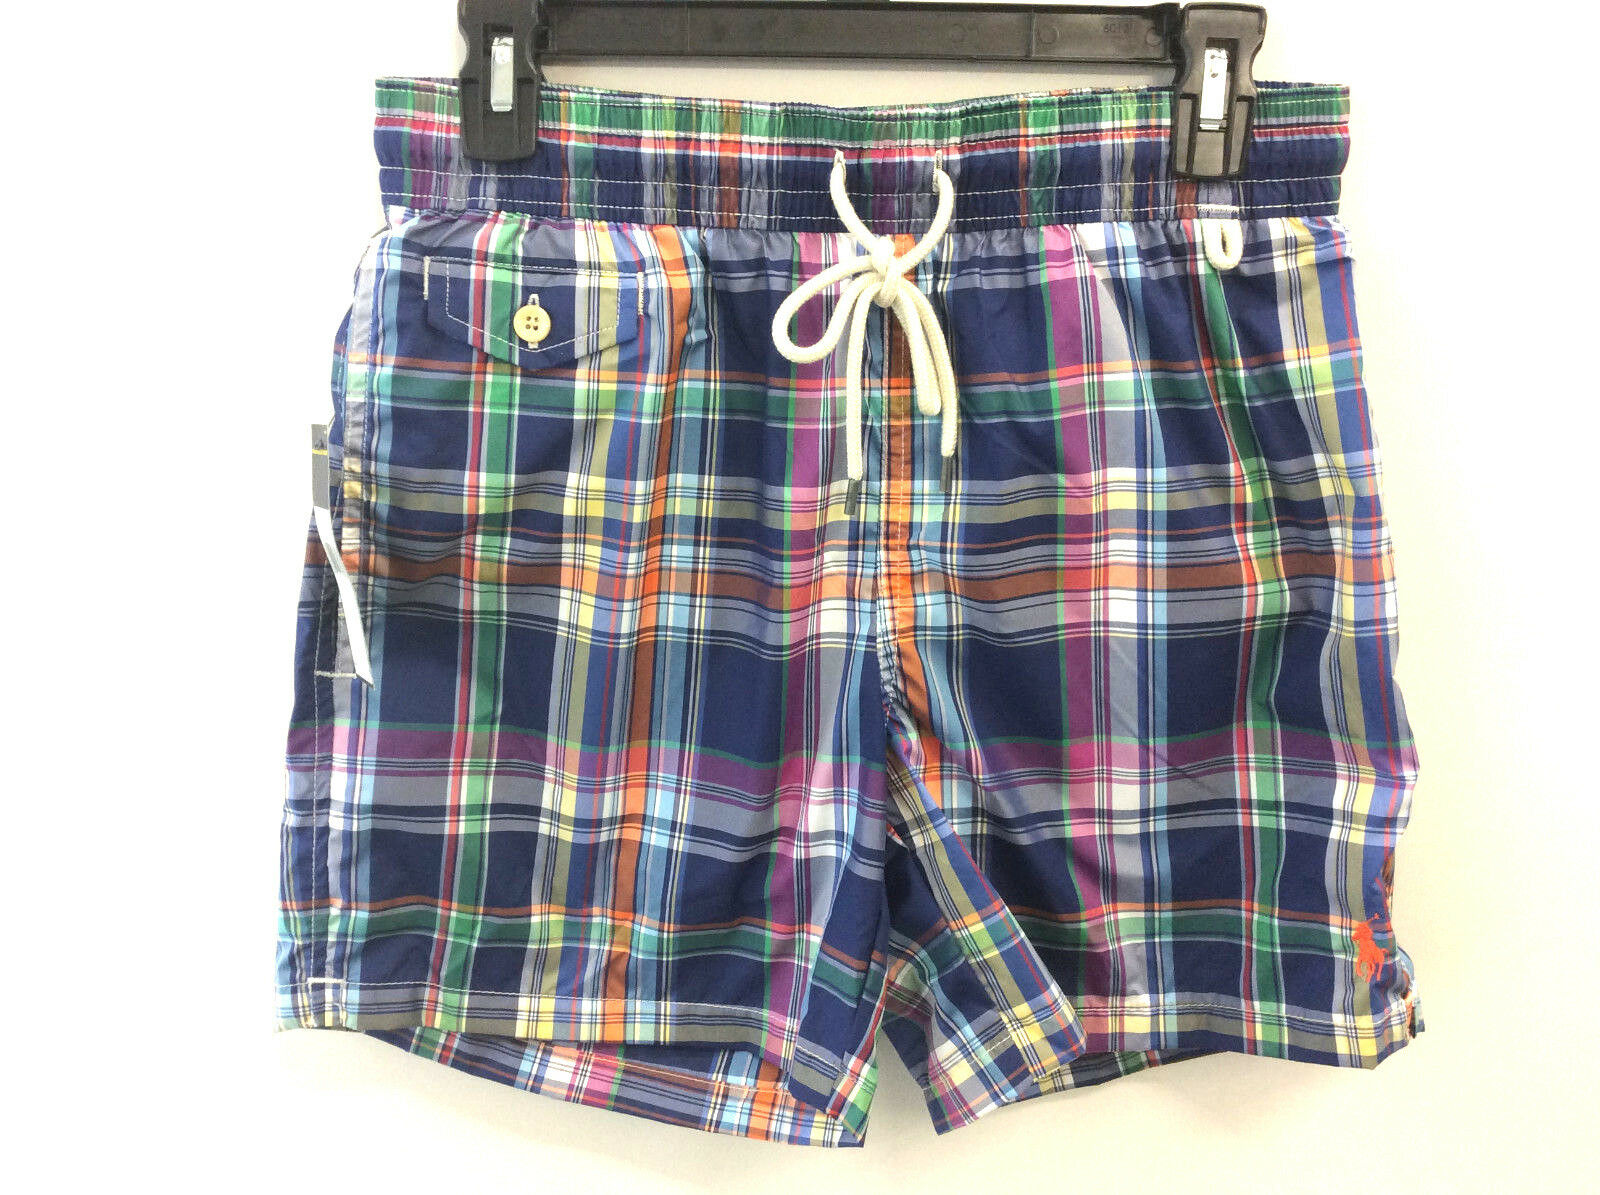 Replay Zwembroek.Polo Ralph Lauren Traveler Cruise Swim Trunks S Men S Plaid